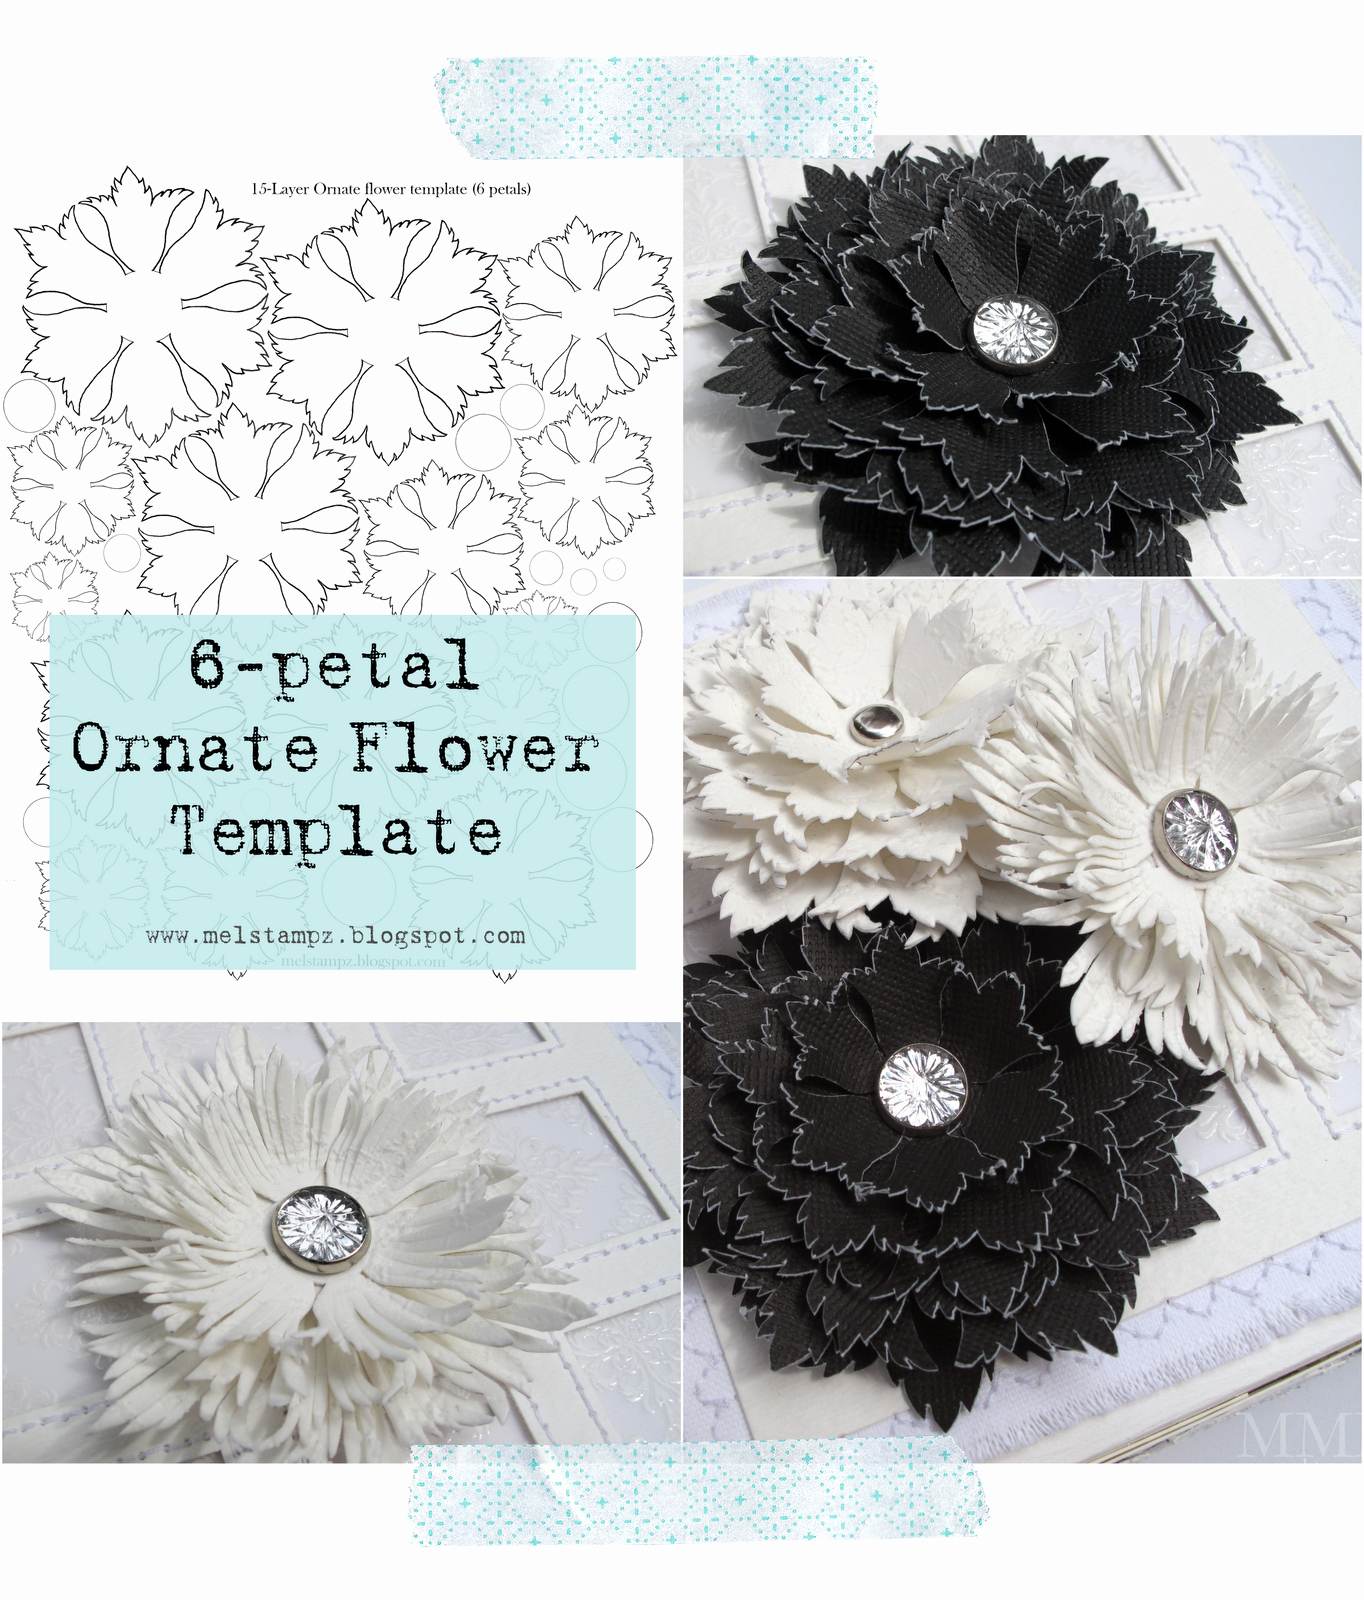 Templates for Paper Flowers Inspirational Mel Stampz 6 Petal ornate Flower Template